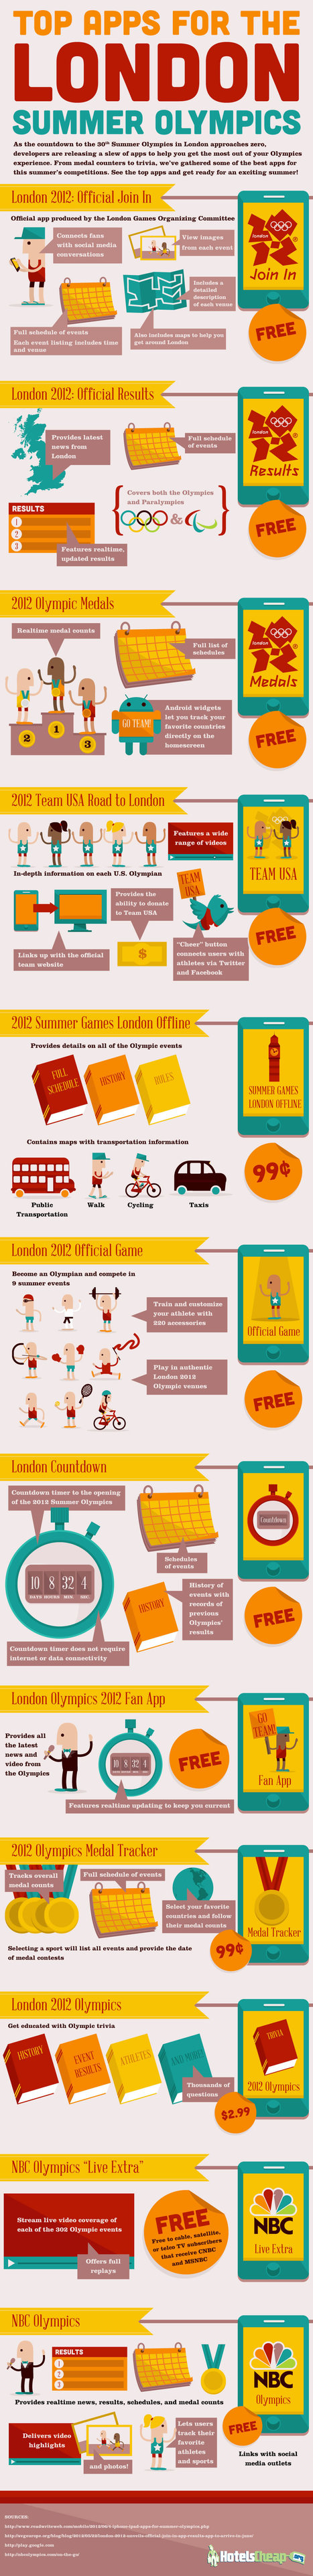 Win Gold With Best Apps for London Olympics 2012 [infographic] | Share Some Love Today | Scoop.it